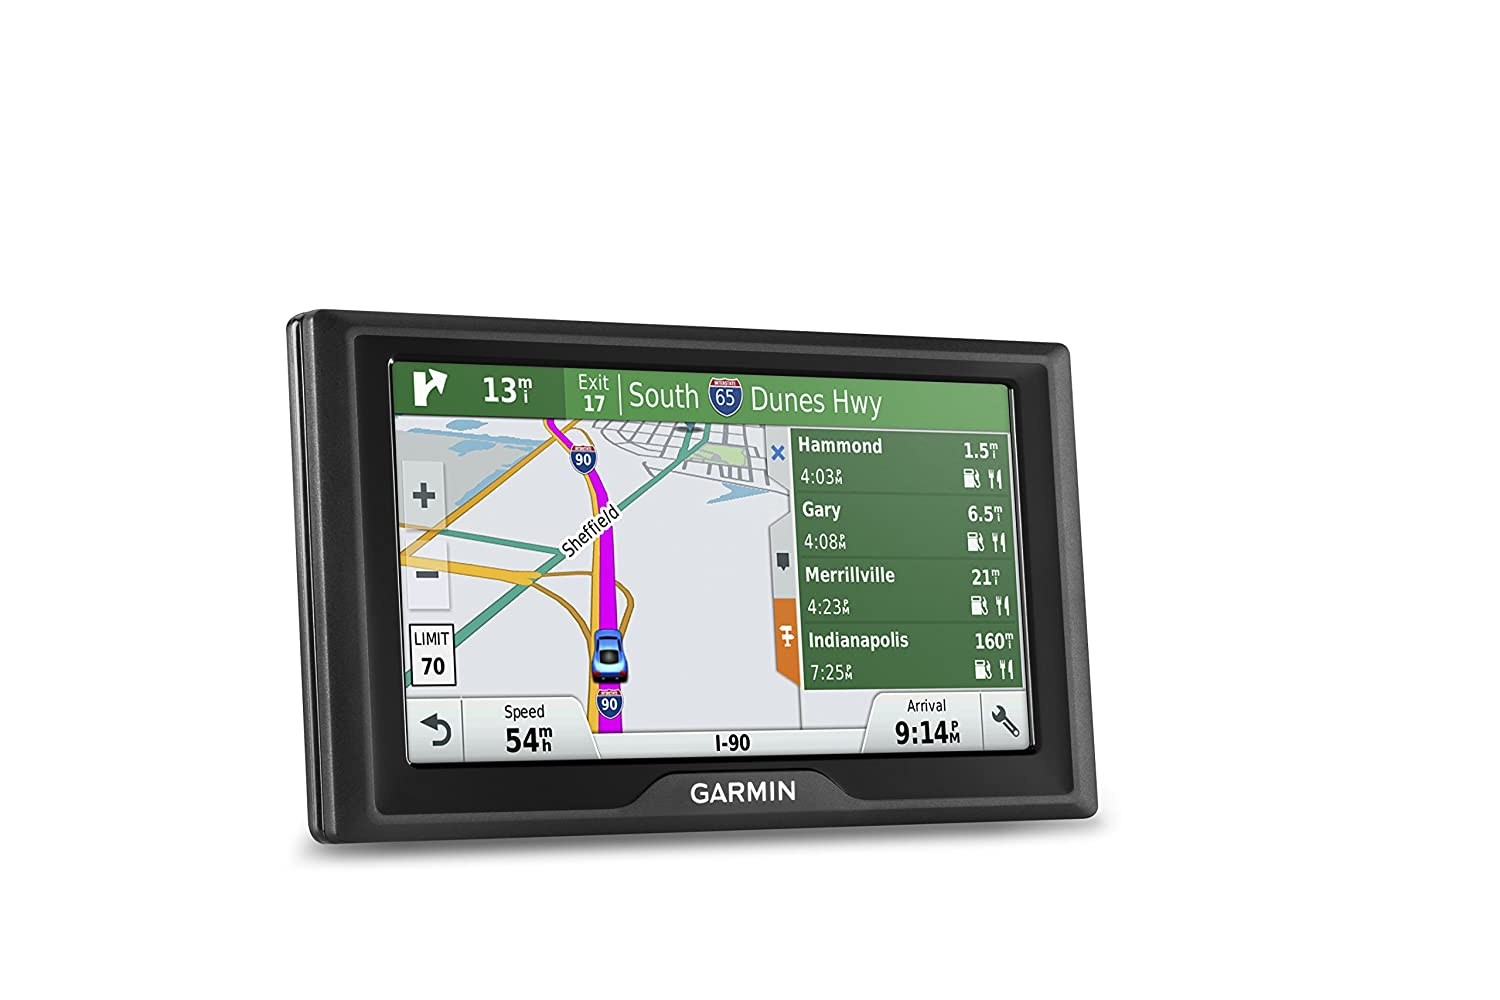 Amazon.com: Garmin Drive 60 USA LMT GPS Navigator System with Lifetime Maps  and Traffic, Driver Alerts, Direct Access, and Foursquare data: GARMIN:  Cell ...